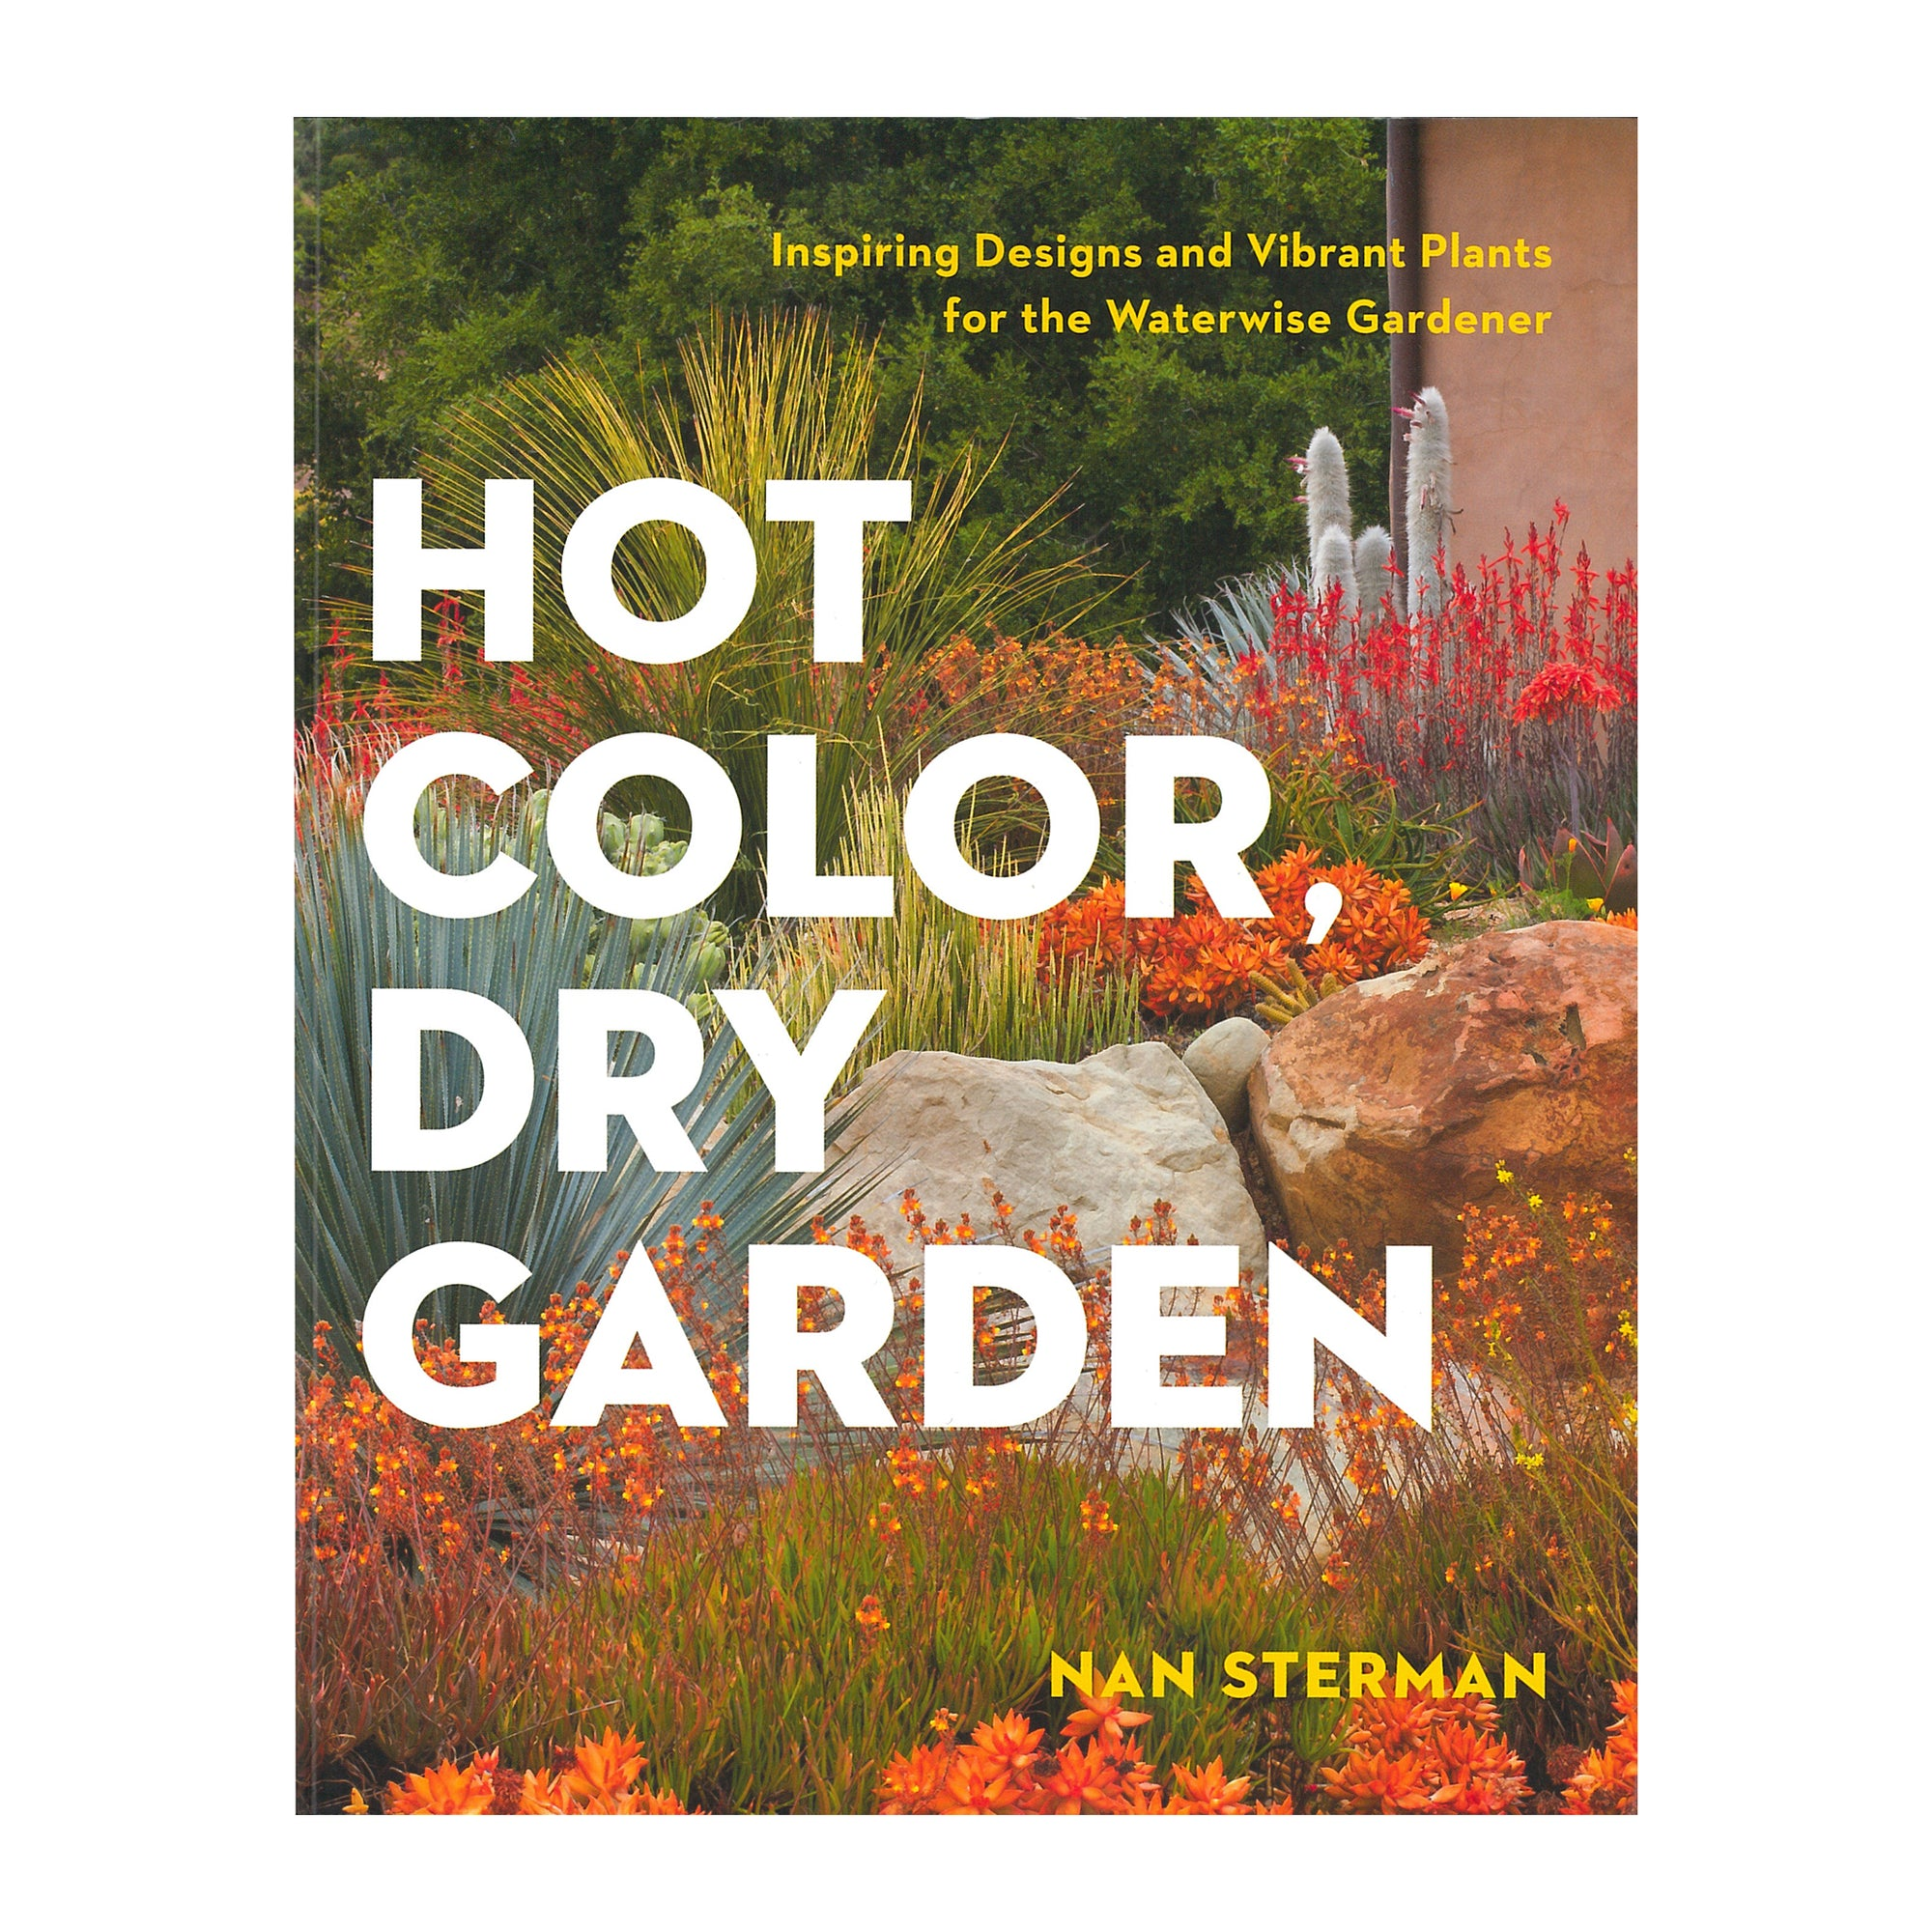 Hot Color Dry Garden: Inspiring Designs and Vibrant Plants for the Waterwise Gardener